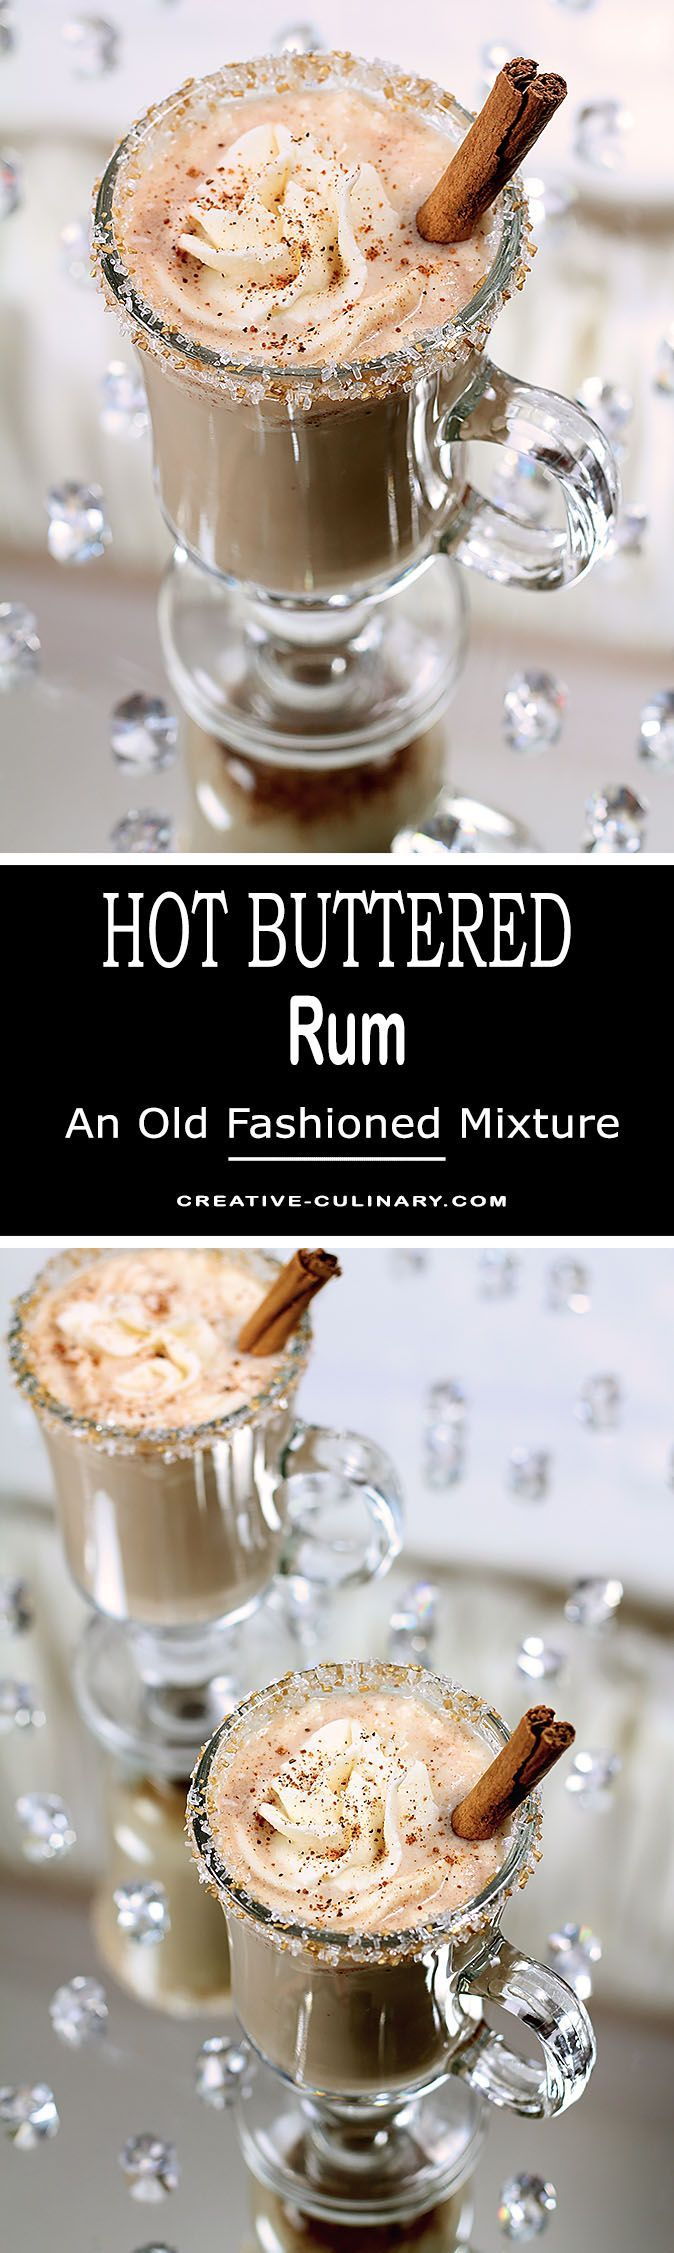 The Best Hot Buttered Rum is this recipe I've been making for years that starts with a vanilla ice cream and brown sugar batter. Simply warm and add rum and you'll be in heaven! via @creativculinary